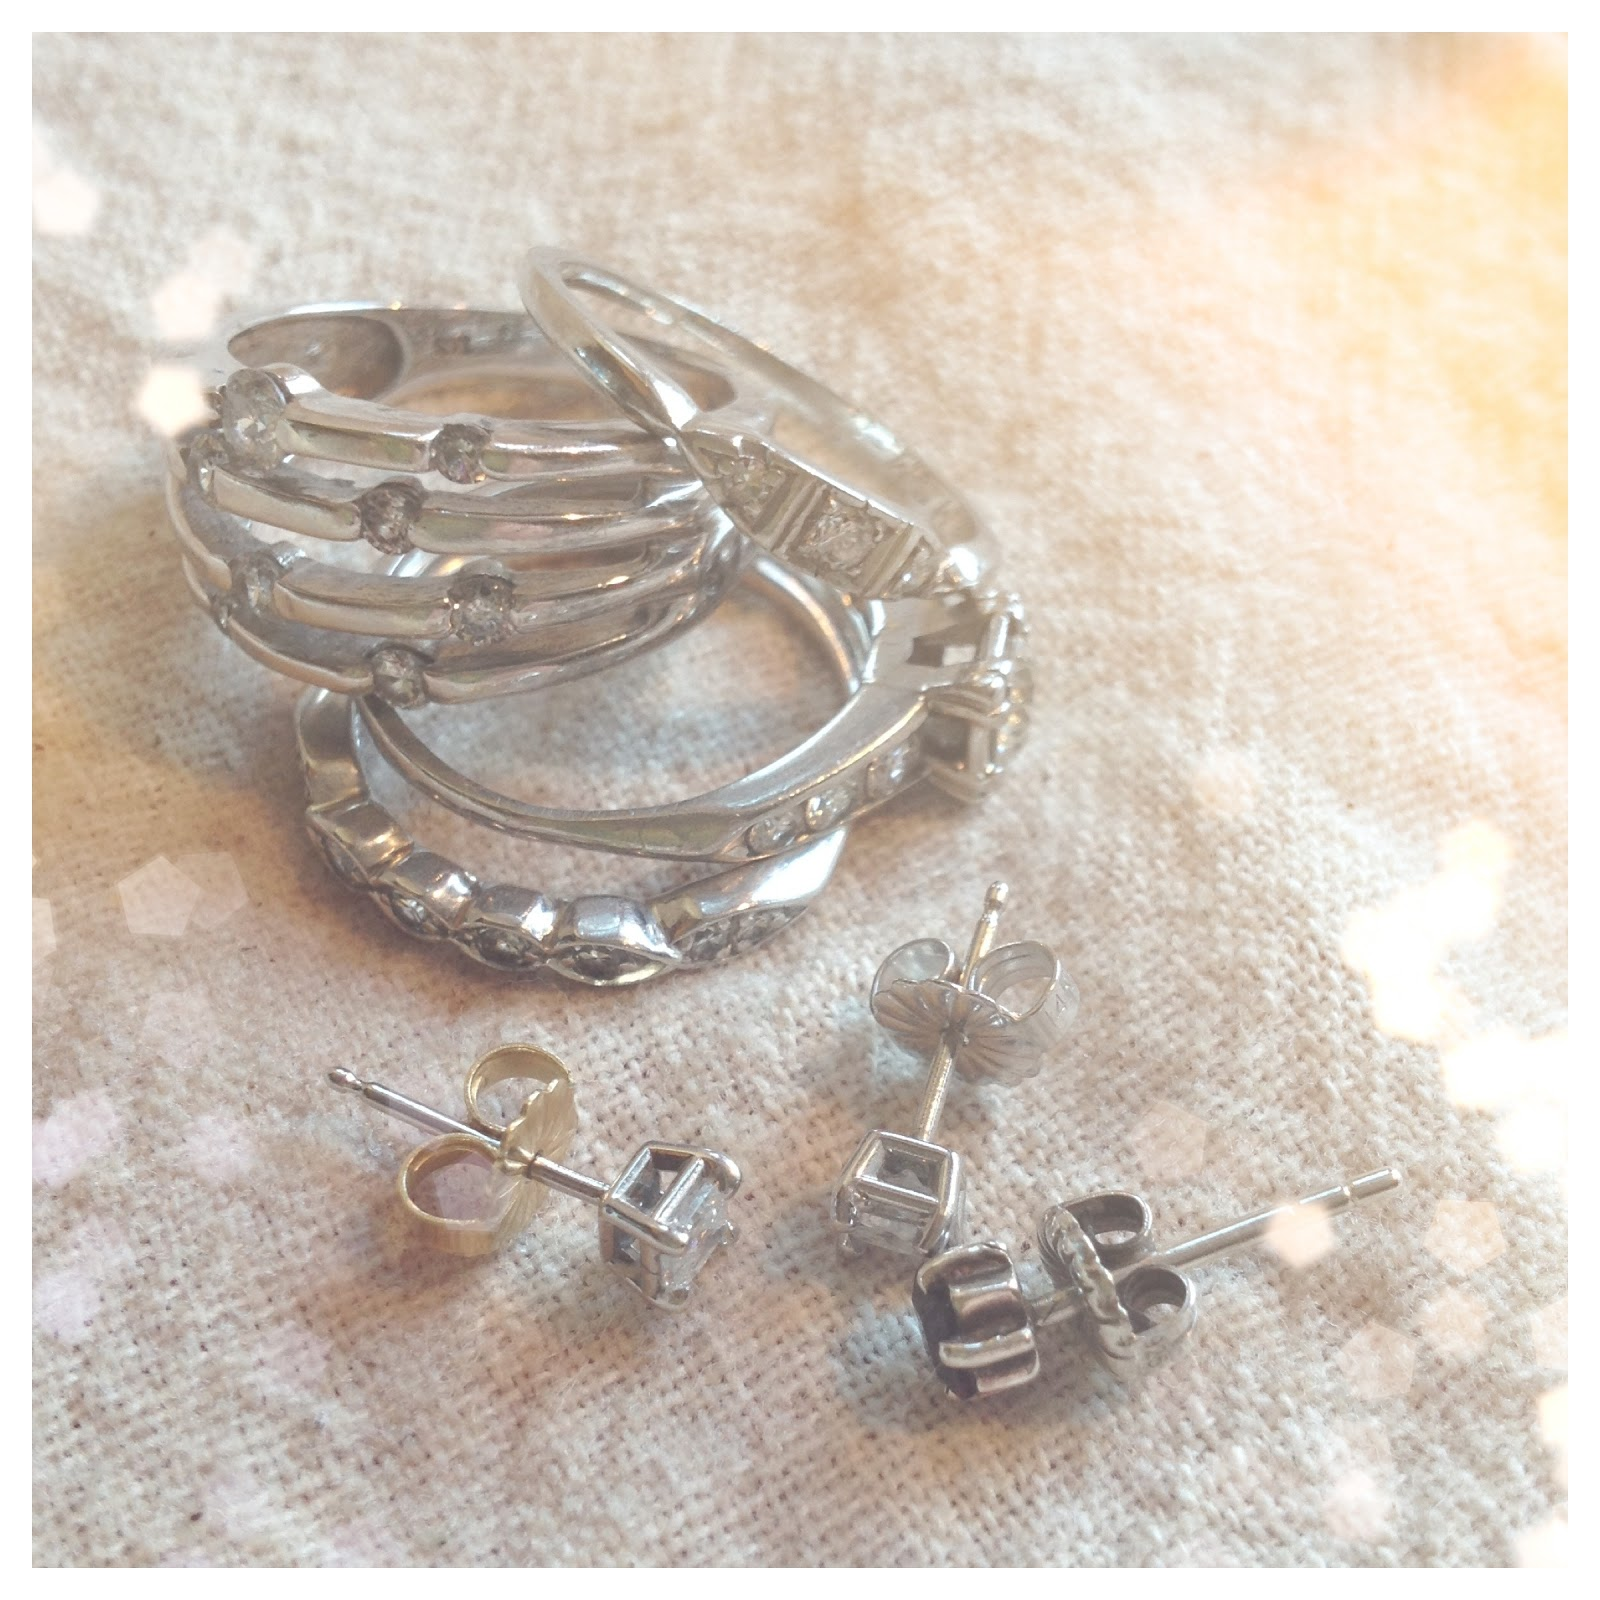 DIY Jewelry Cleaning on the Cheap